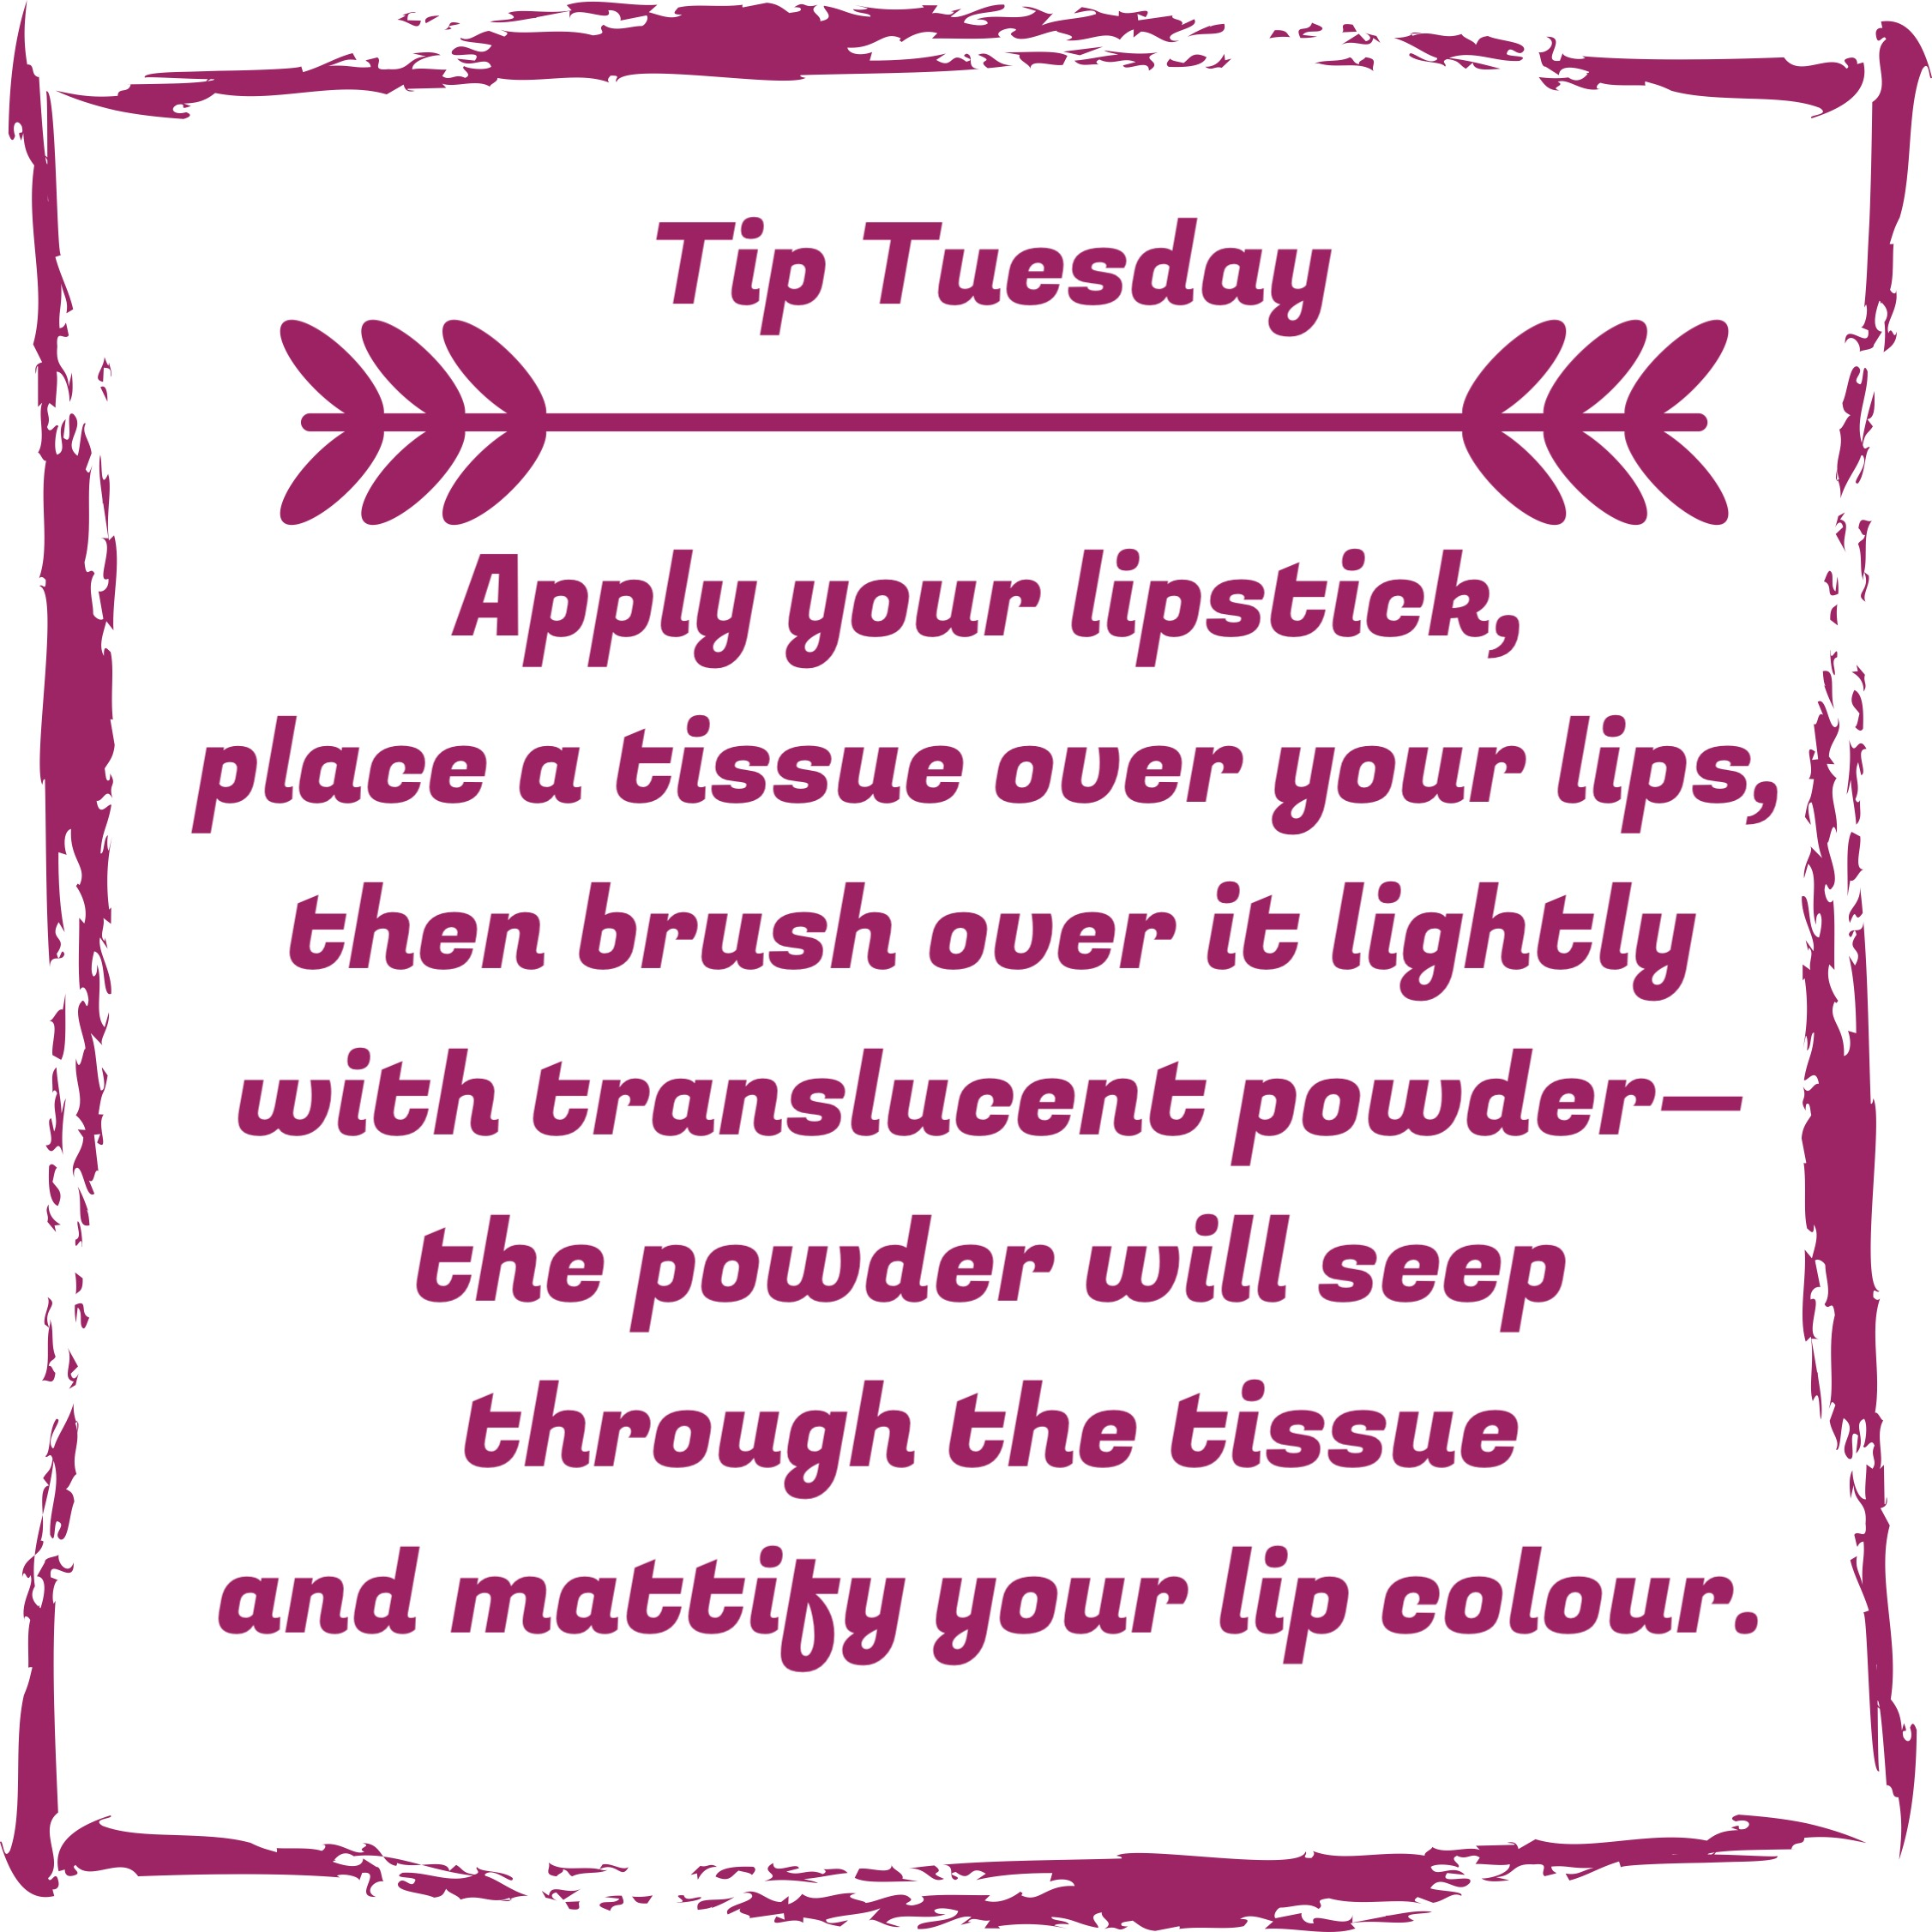 tip Tuesday, makeup tips, beauty hacks, makeup tips and tricks, makeup tricks, beauty tips, skincare tips